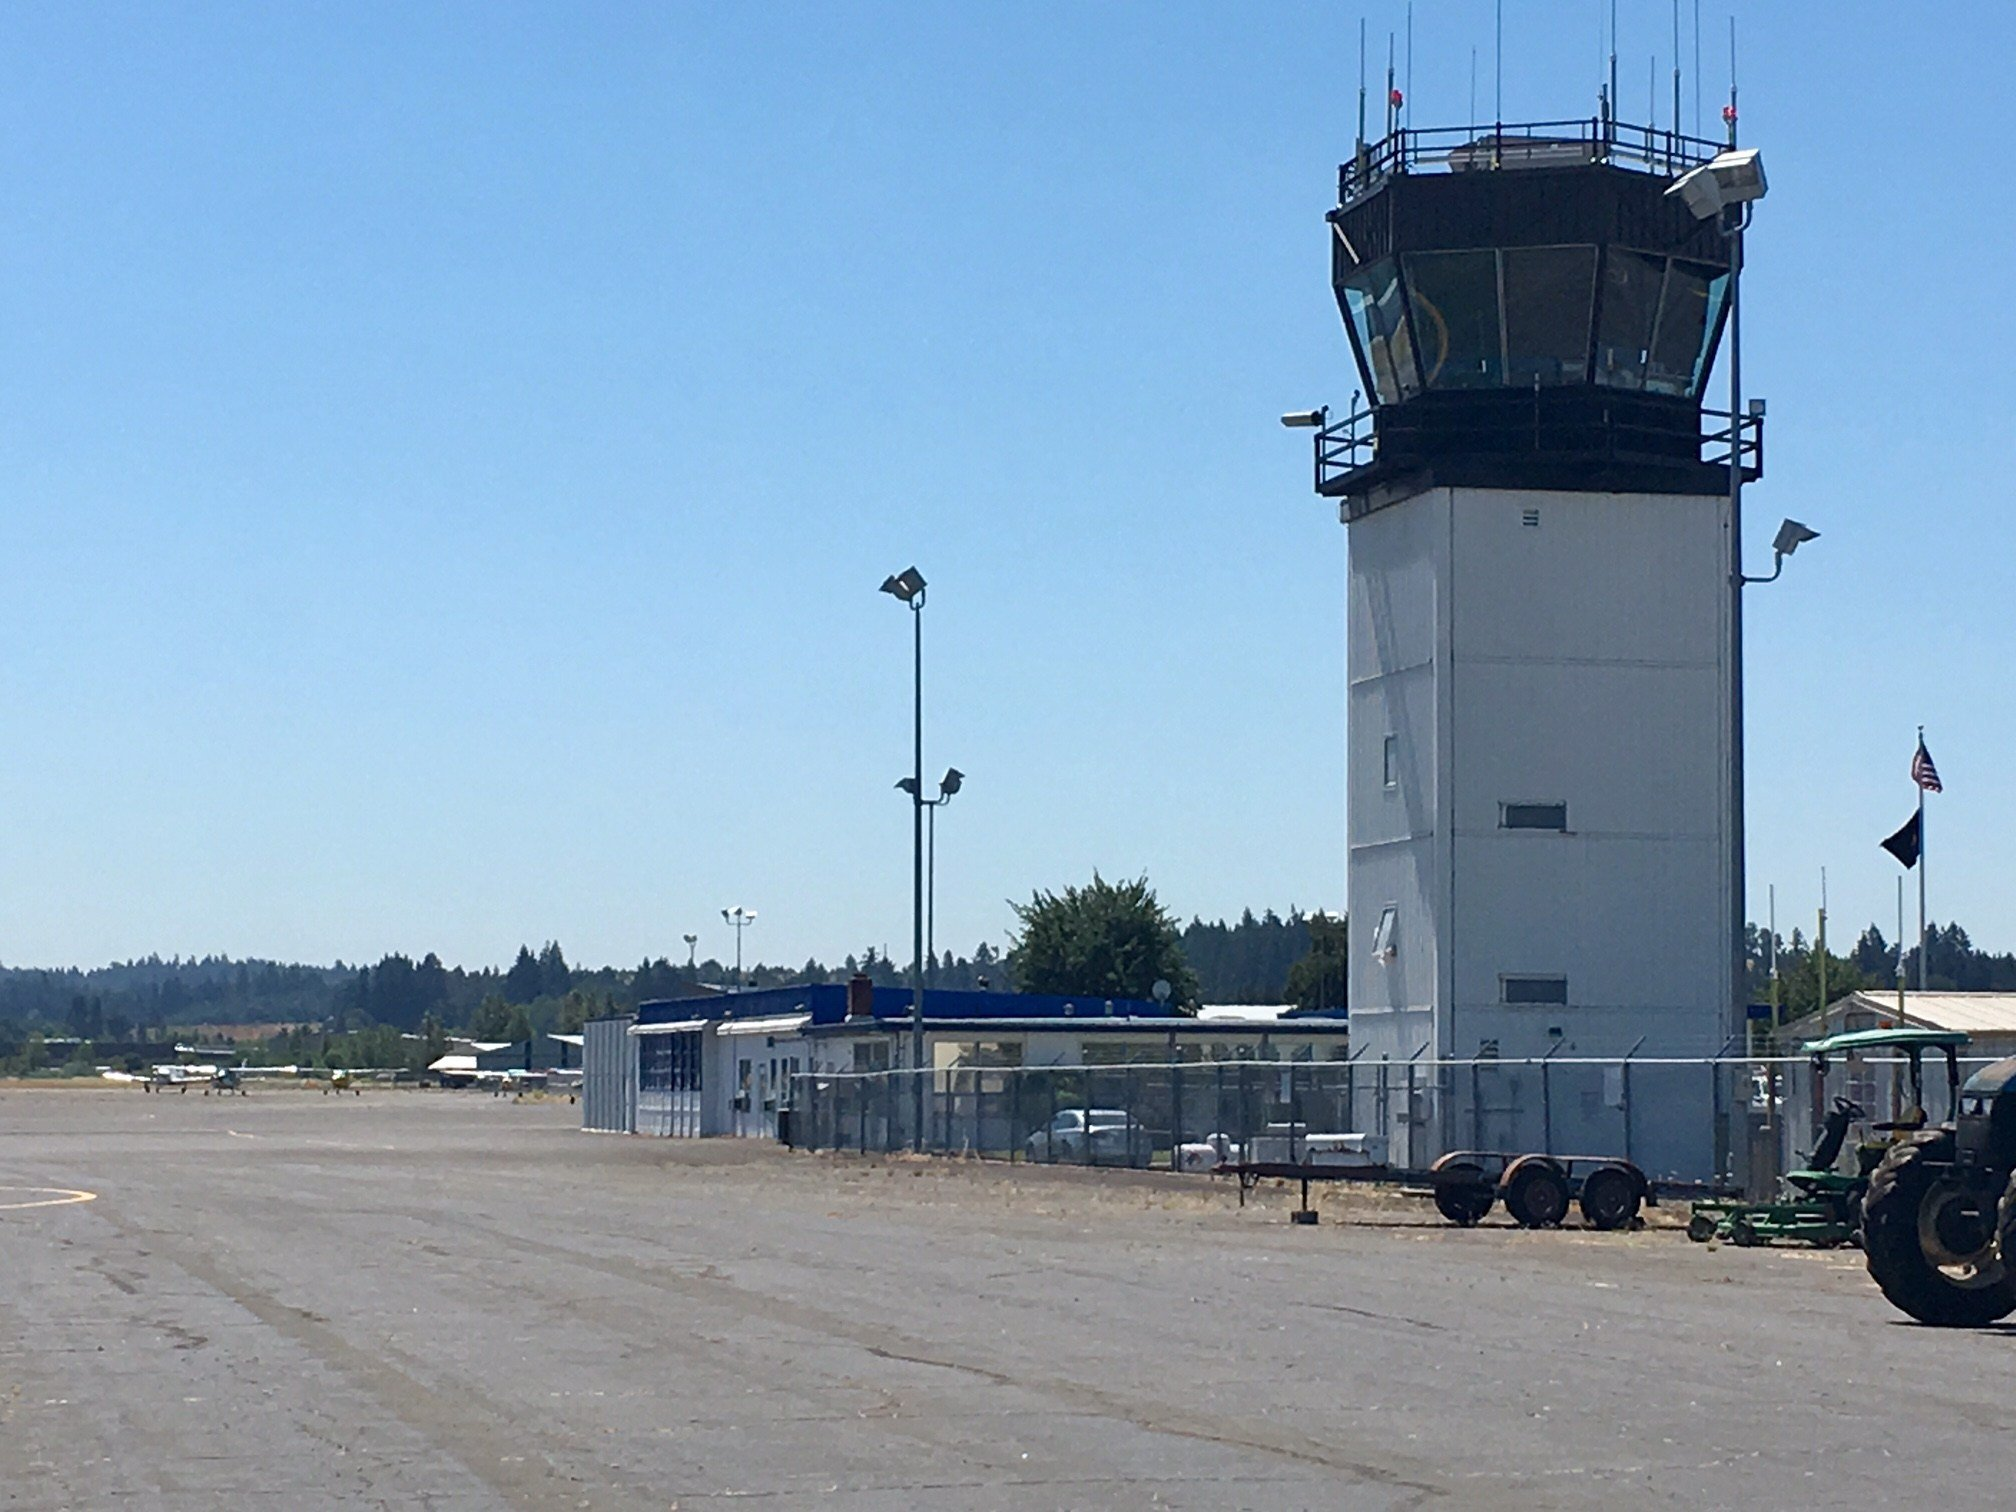 The air traffic control tower at McNary Field.